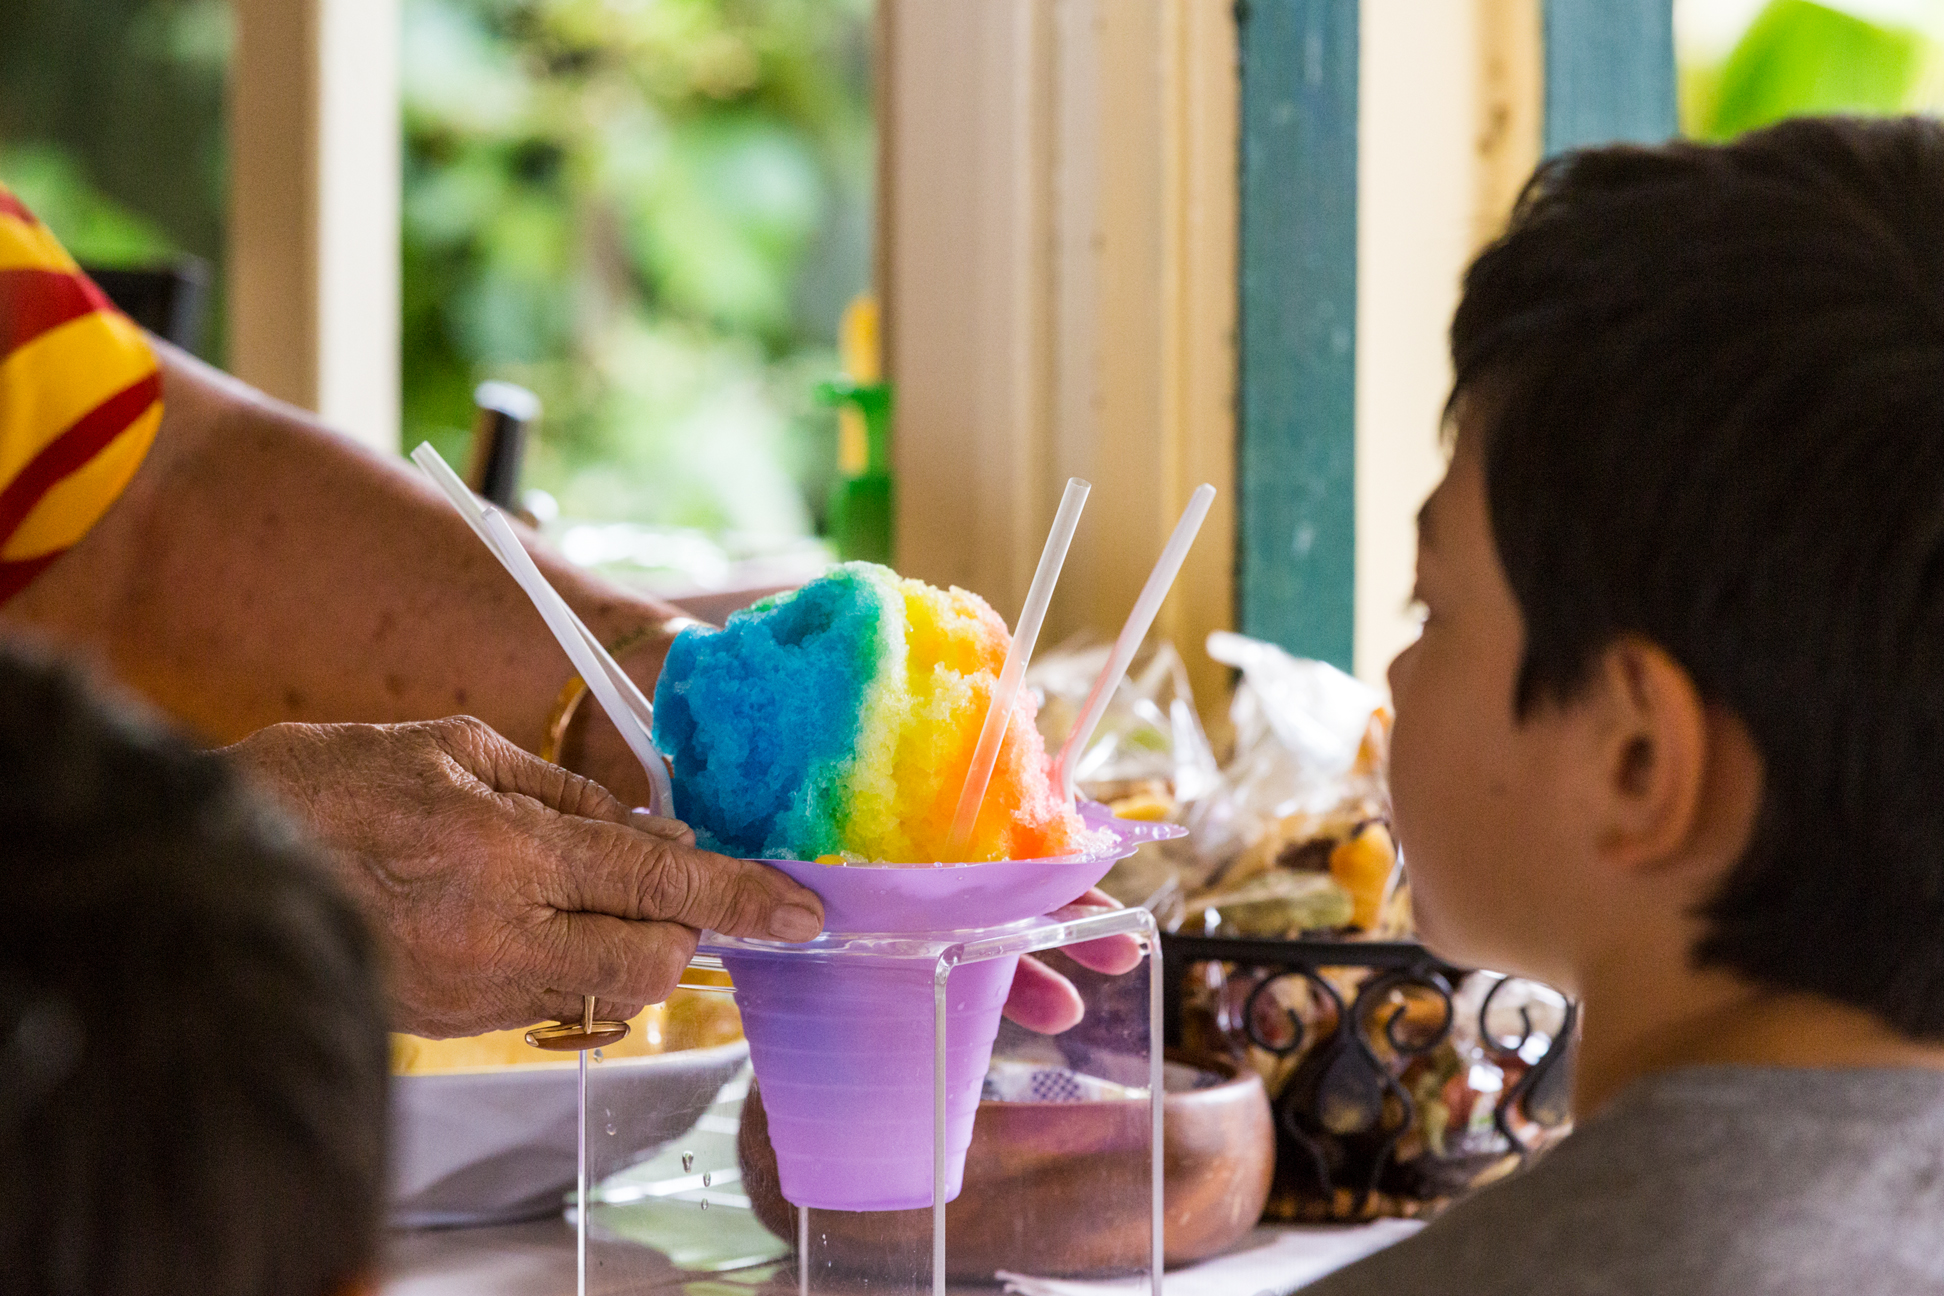 A boy is served a colorful shave ice.